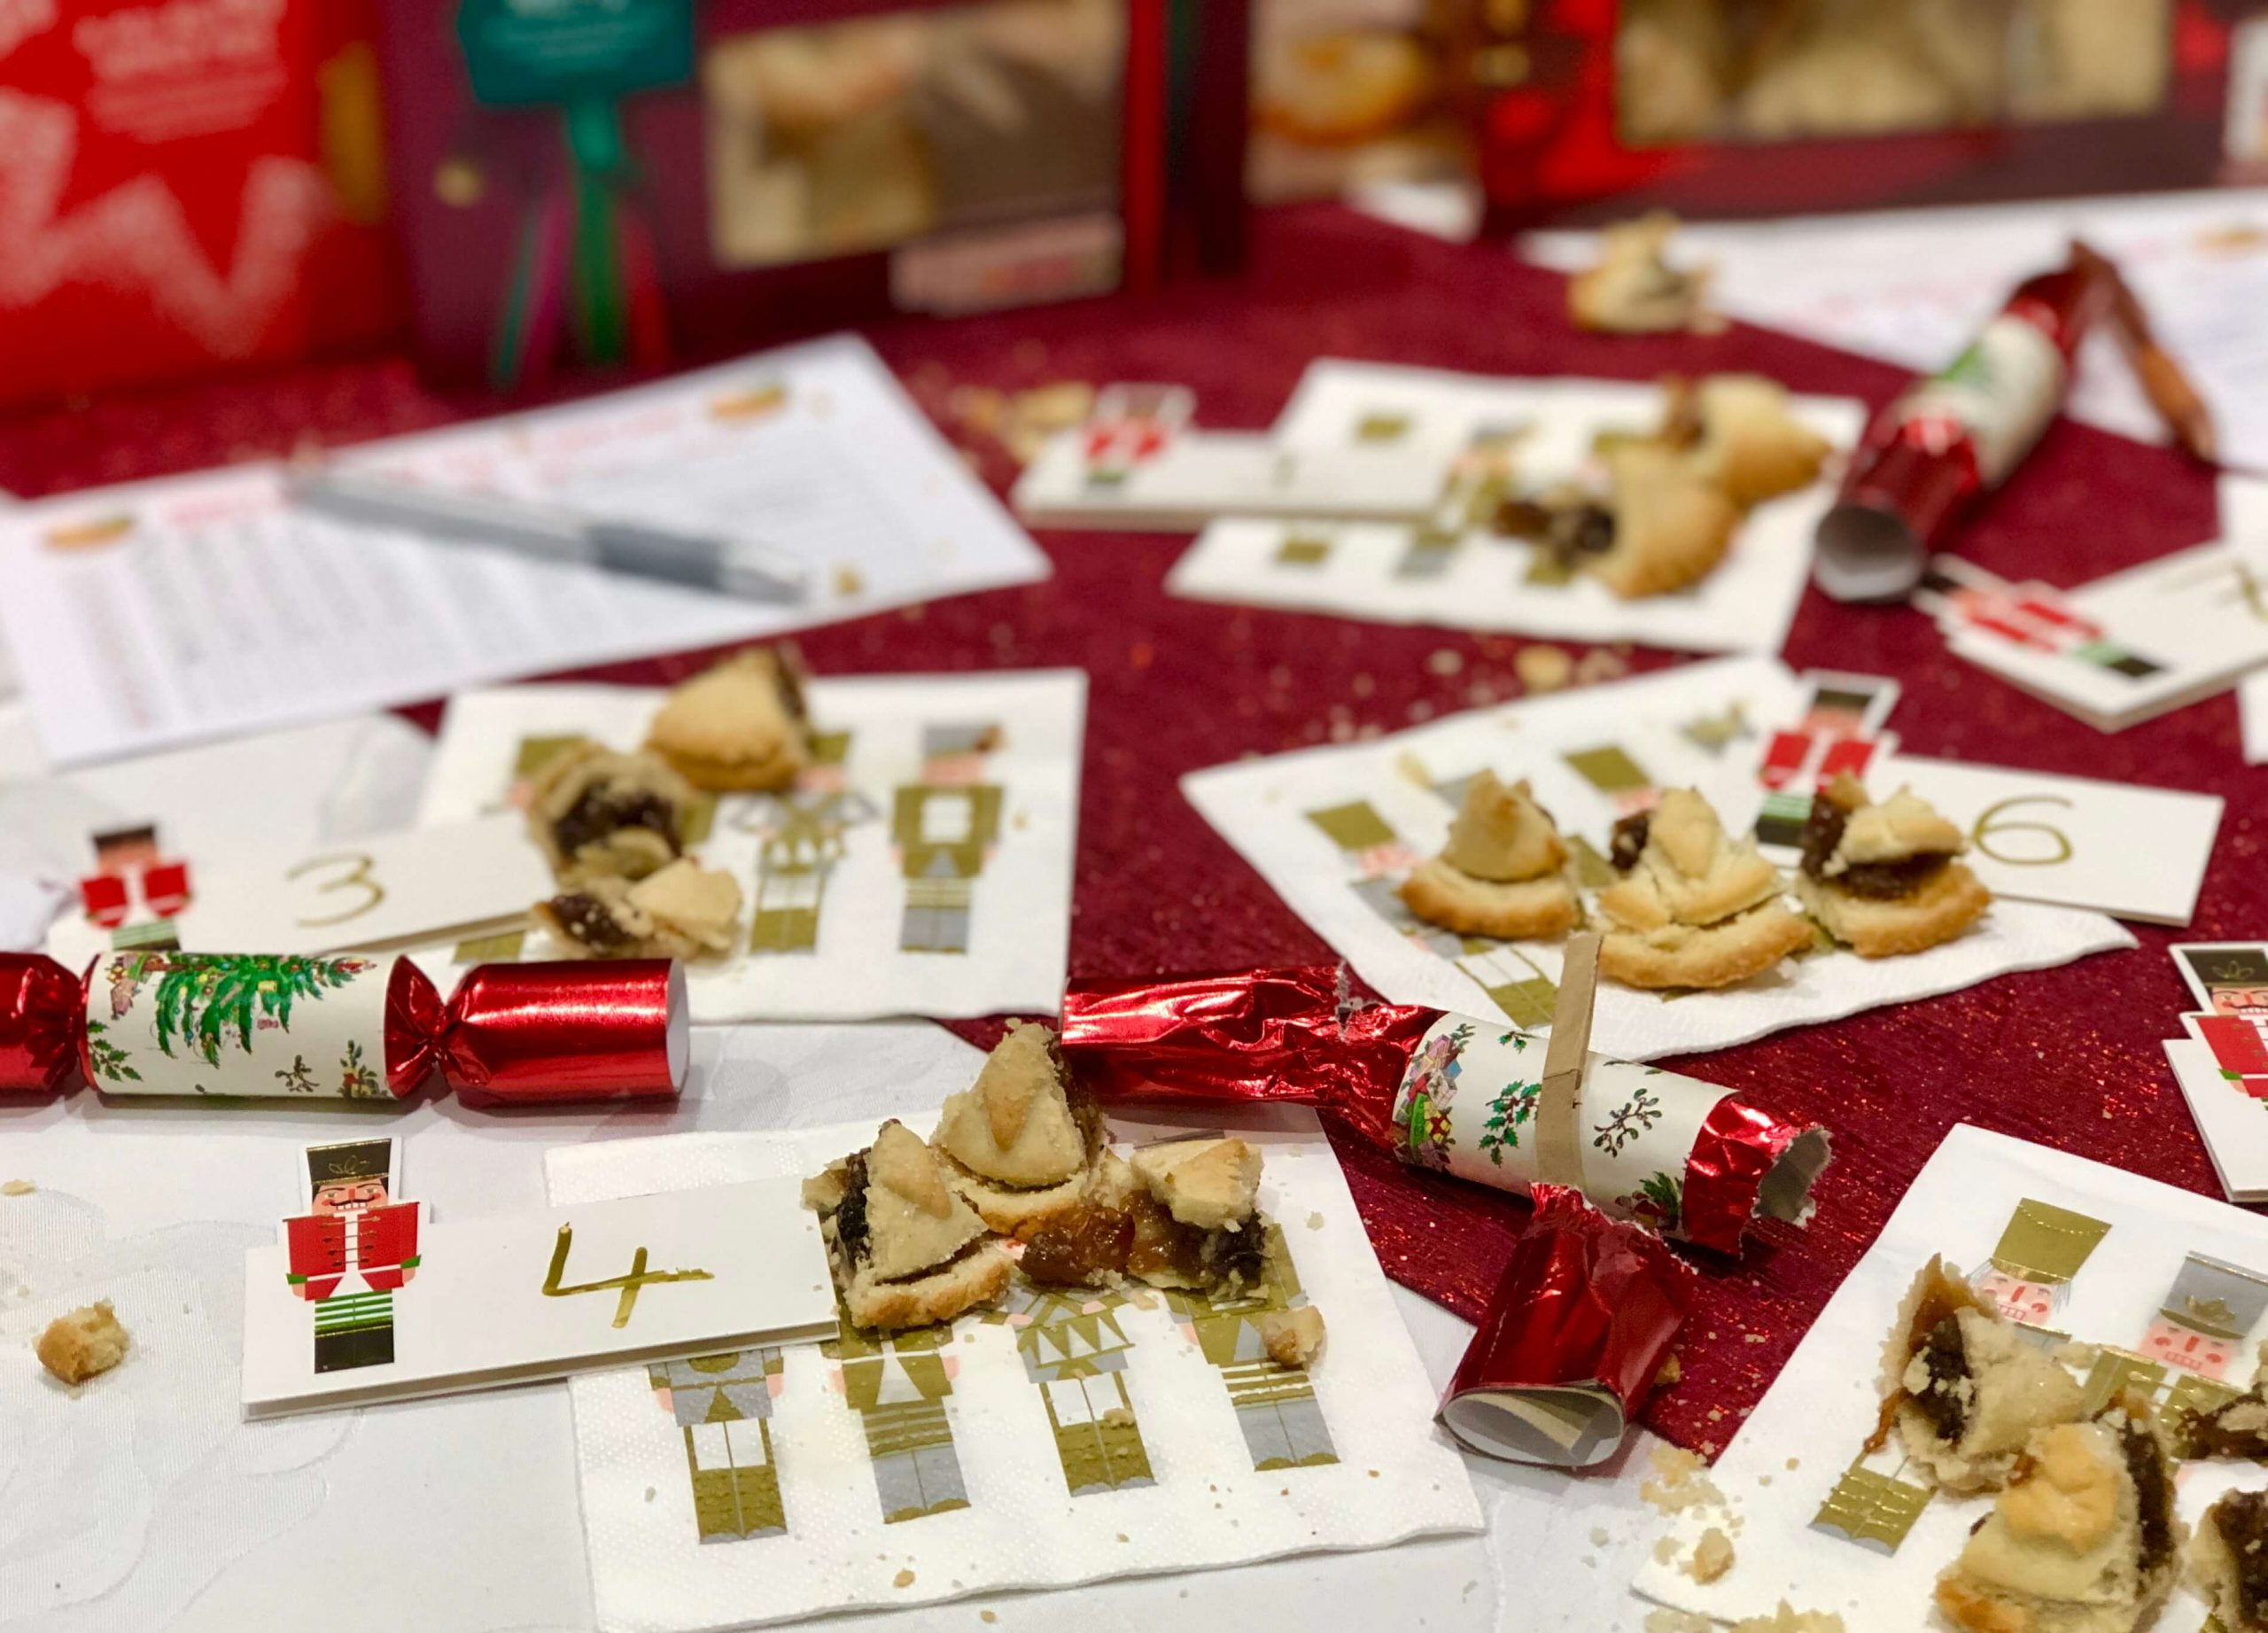 Mince Pie Taste Test Party Table Laid Out